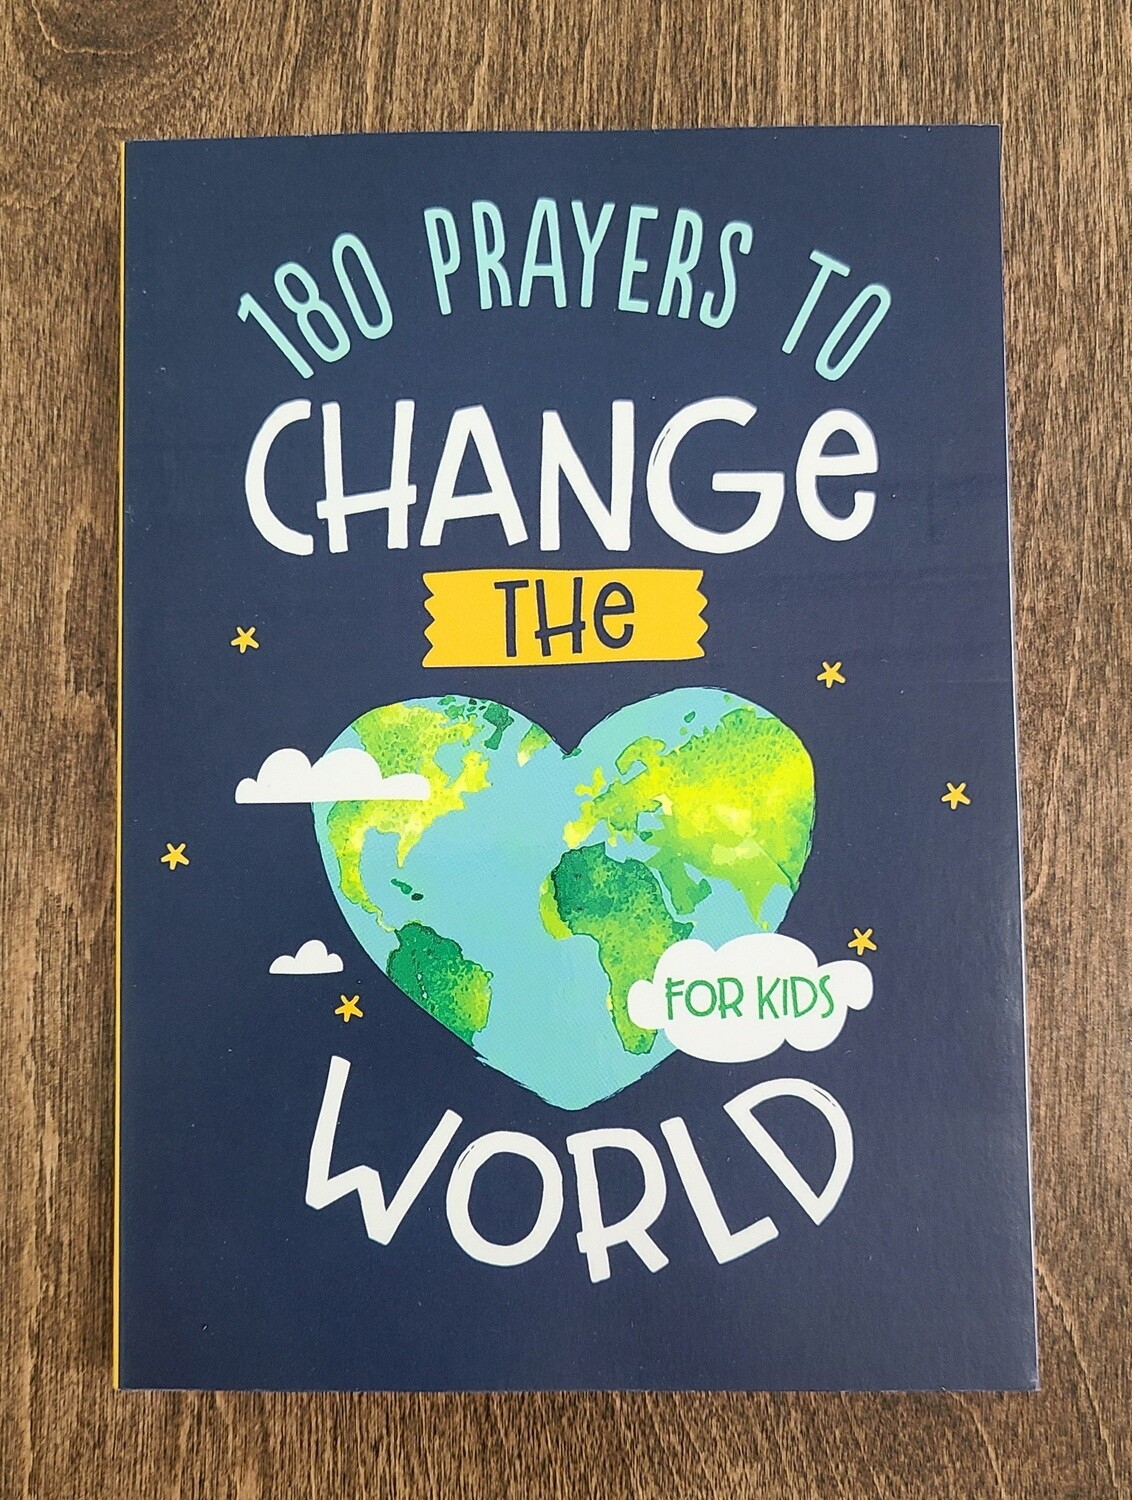 180 Prayers to Change the World for Kids by Janice Thompson